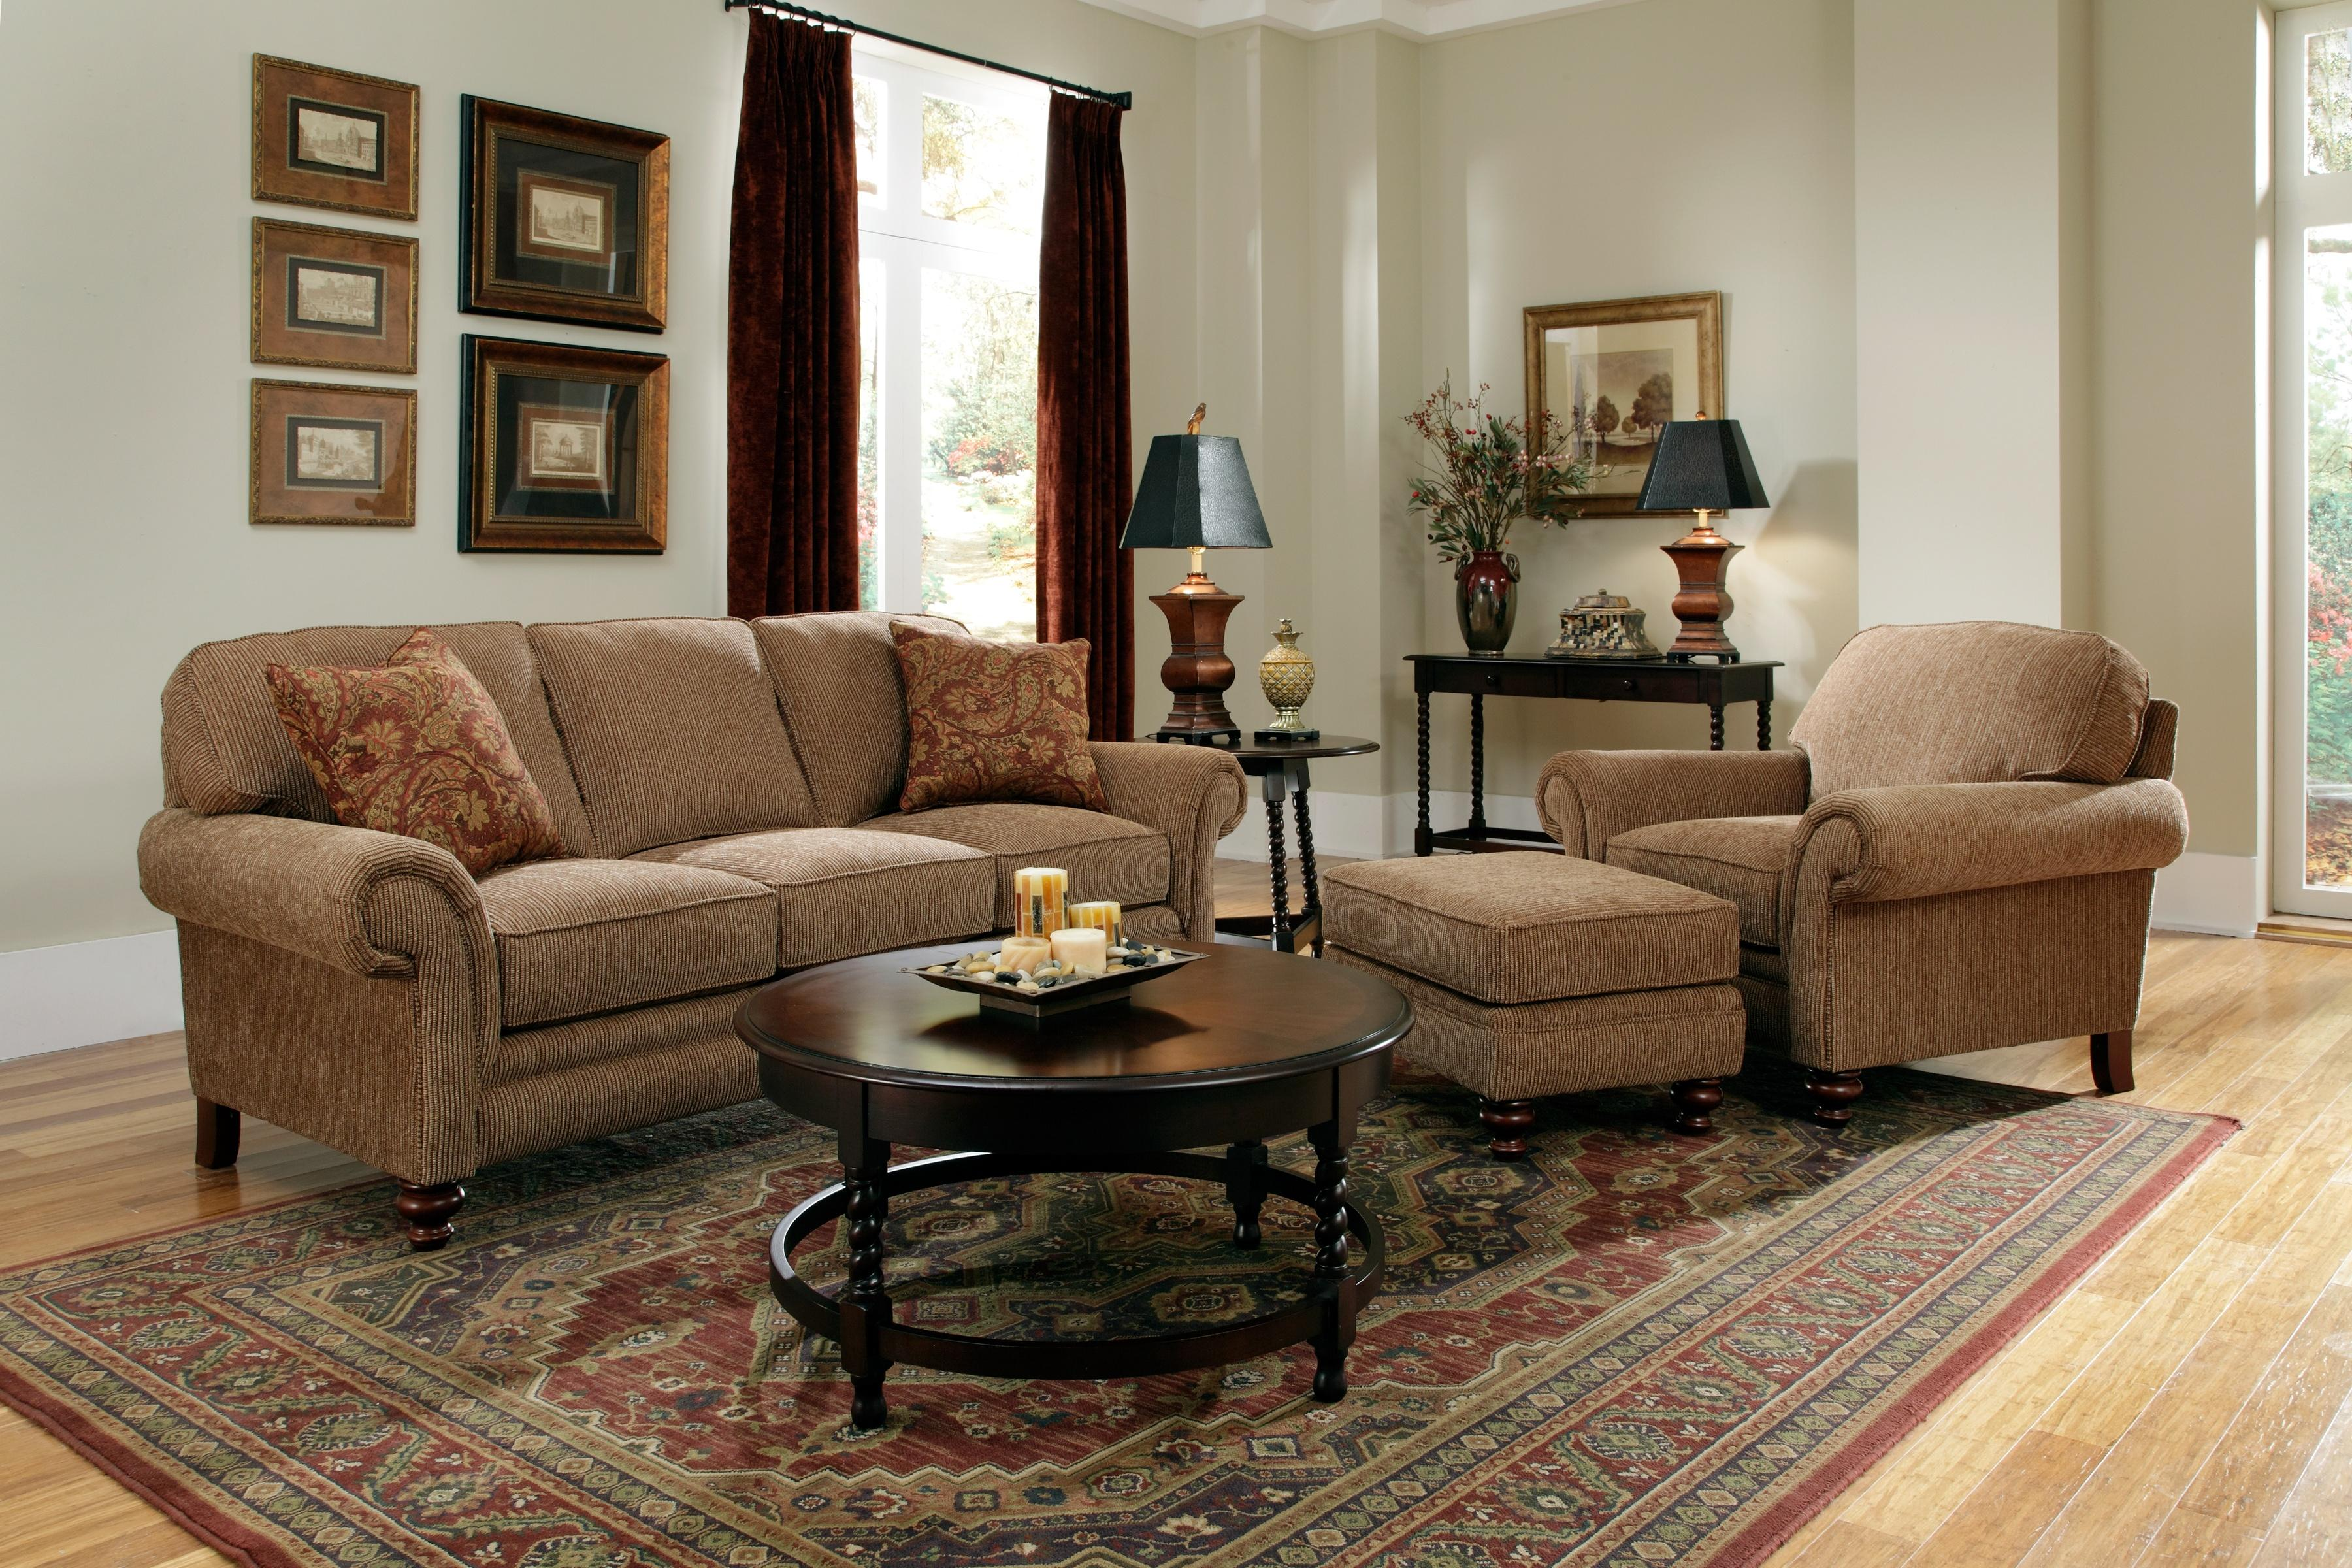 Broyhill Furniture Larissa Stationary Living Room Group - Item Number: 6112 Living Room Group 1